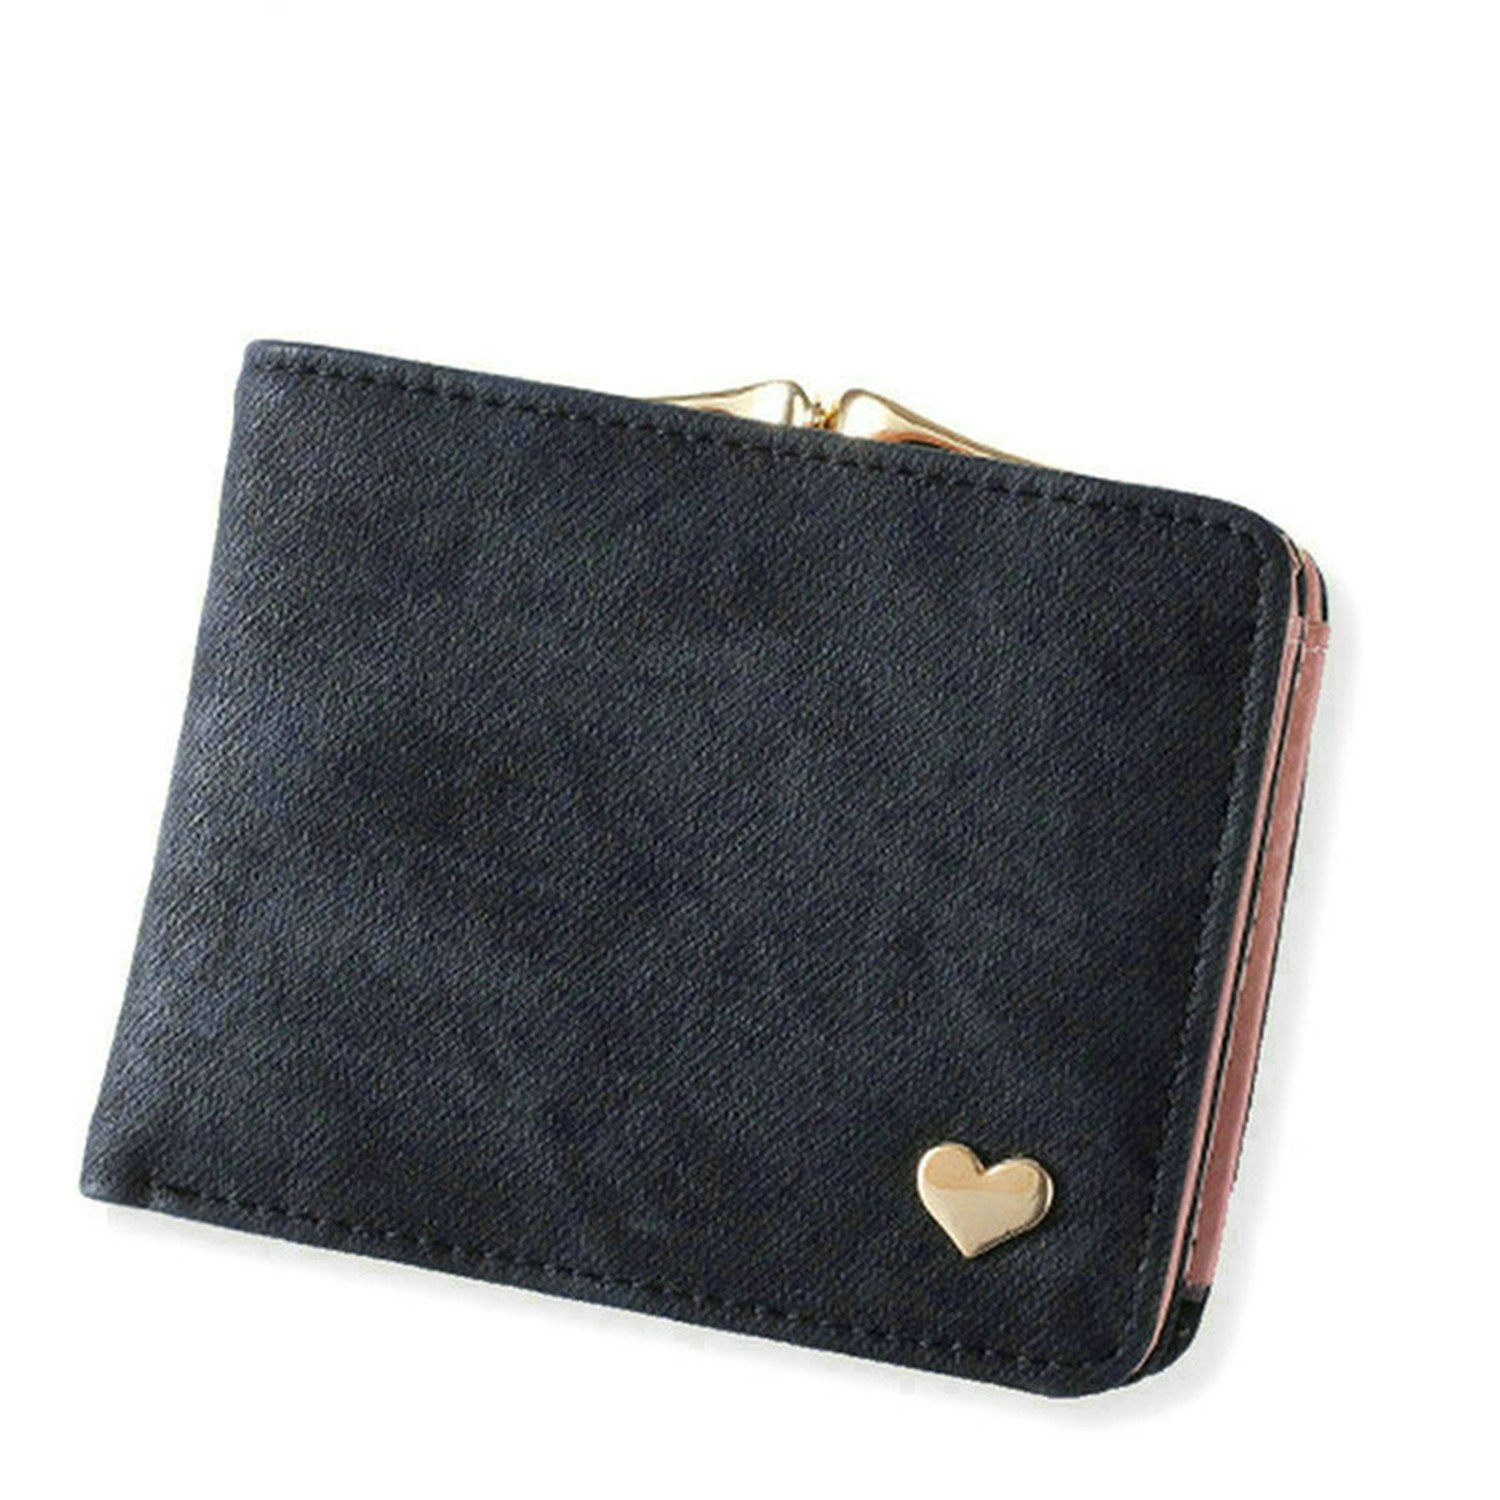 Cocainat New Woman Wallet Small Hasp Coin Purse For Women Luxury Leather Wallets Design Brand Mini Lady Purses Clutch Card Holder Black at Amazon Womens ...